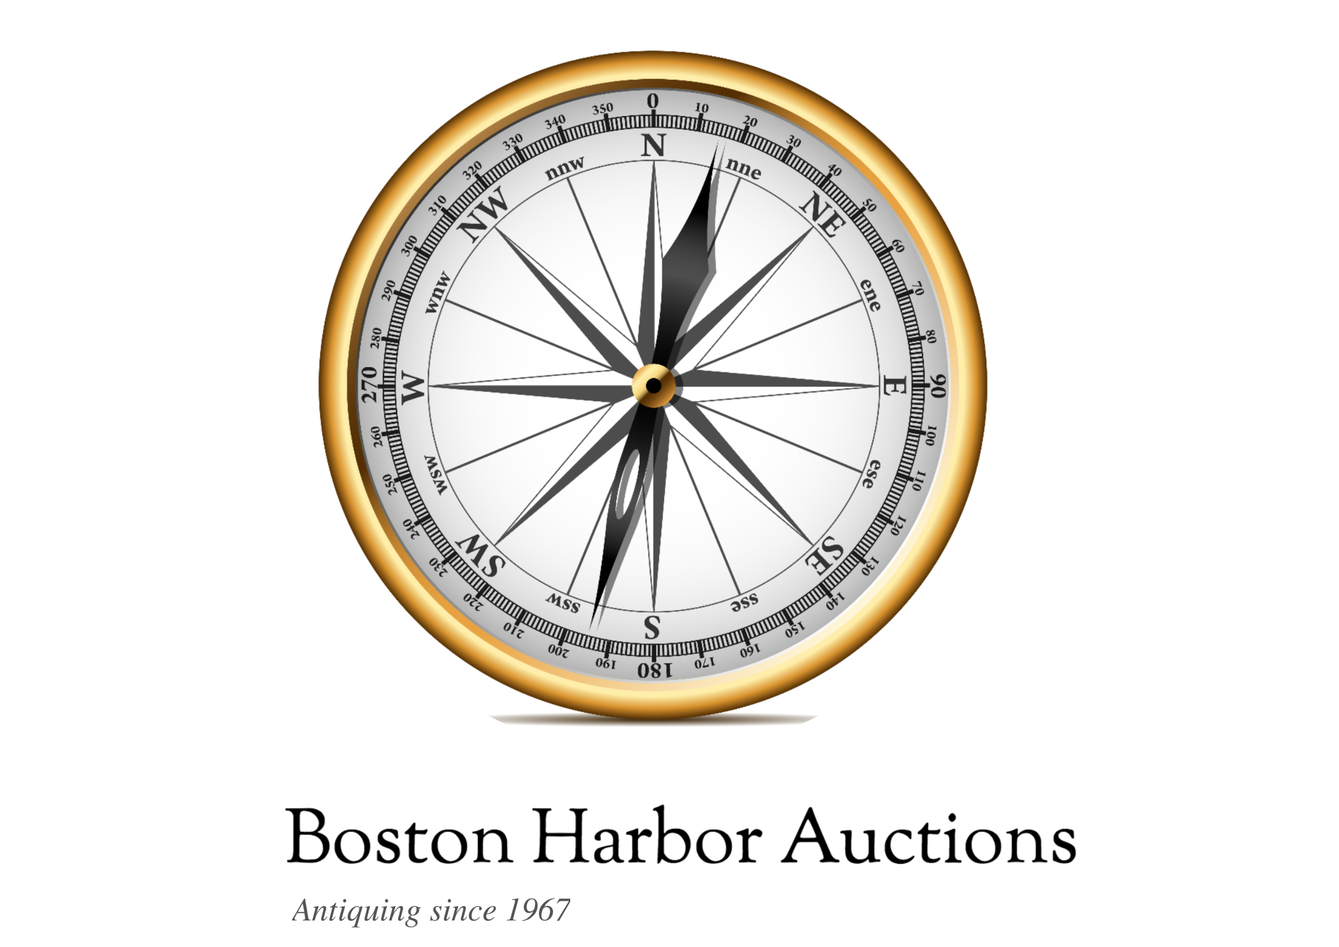 Boston Harbor Auctions